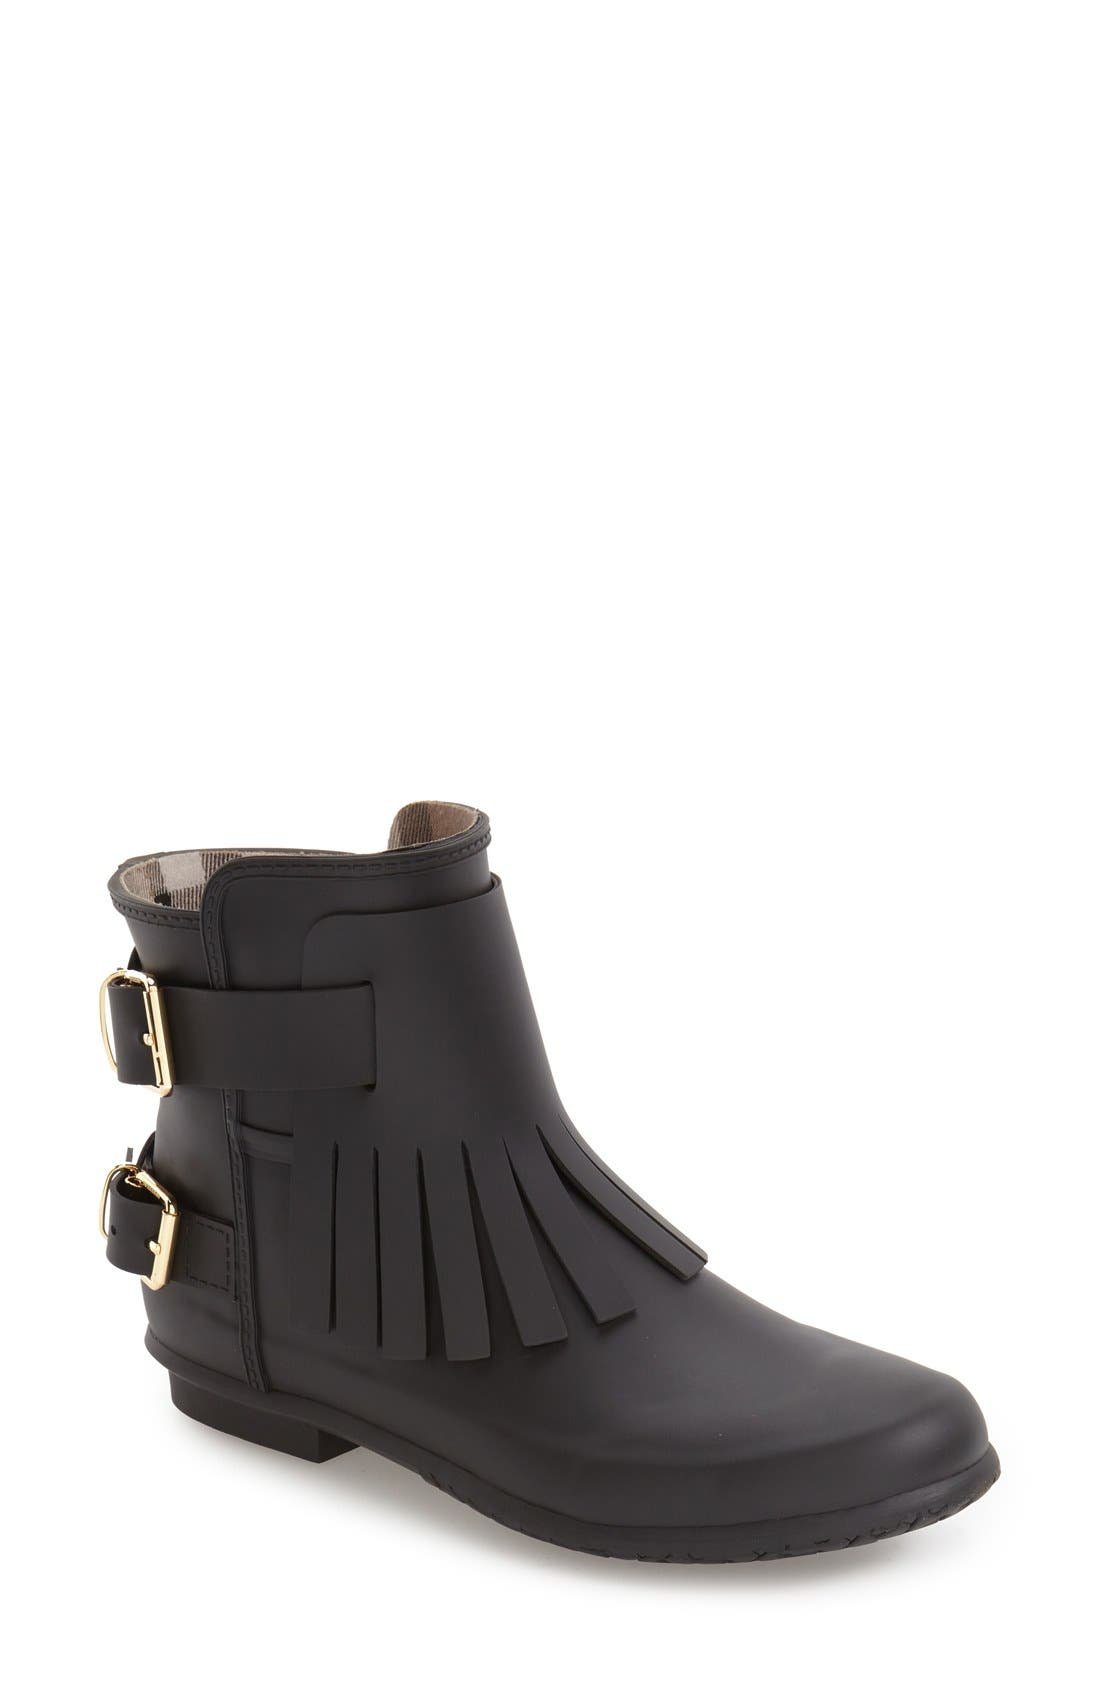 Main Image - Burberry 'Fritton' Kiltie Rain Boot (Women)